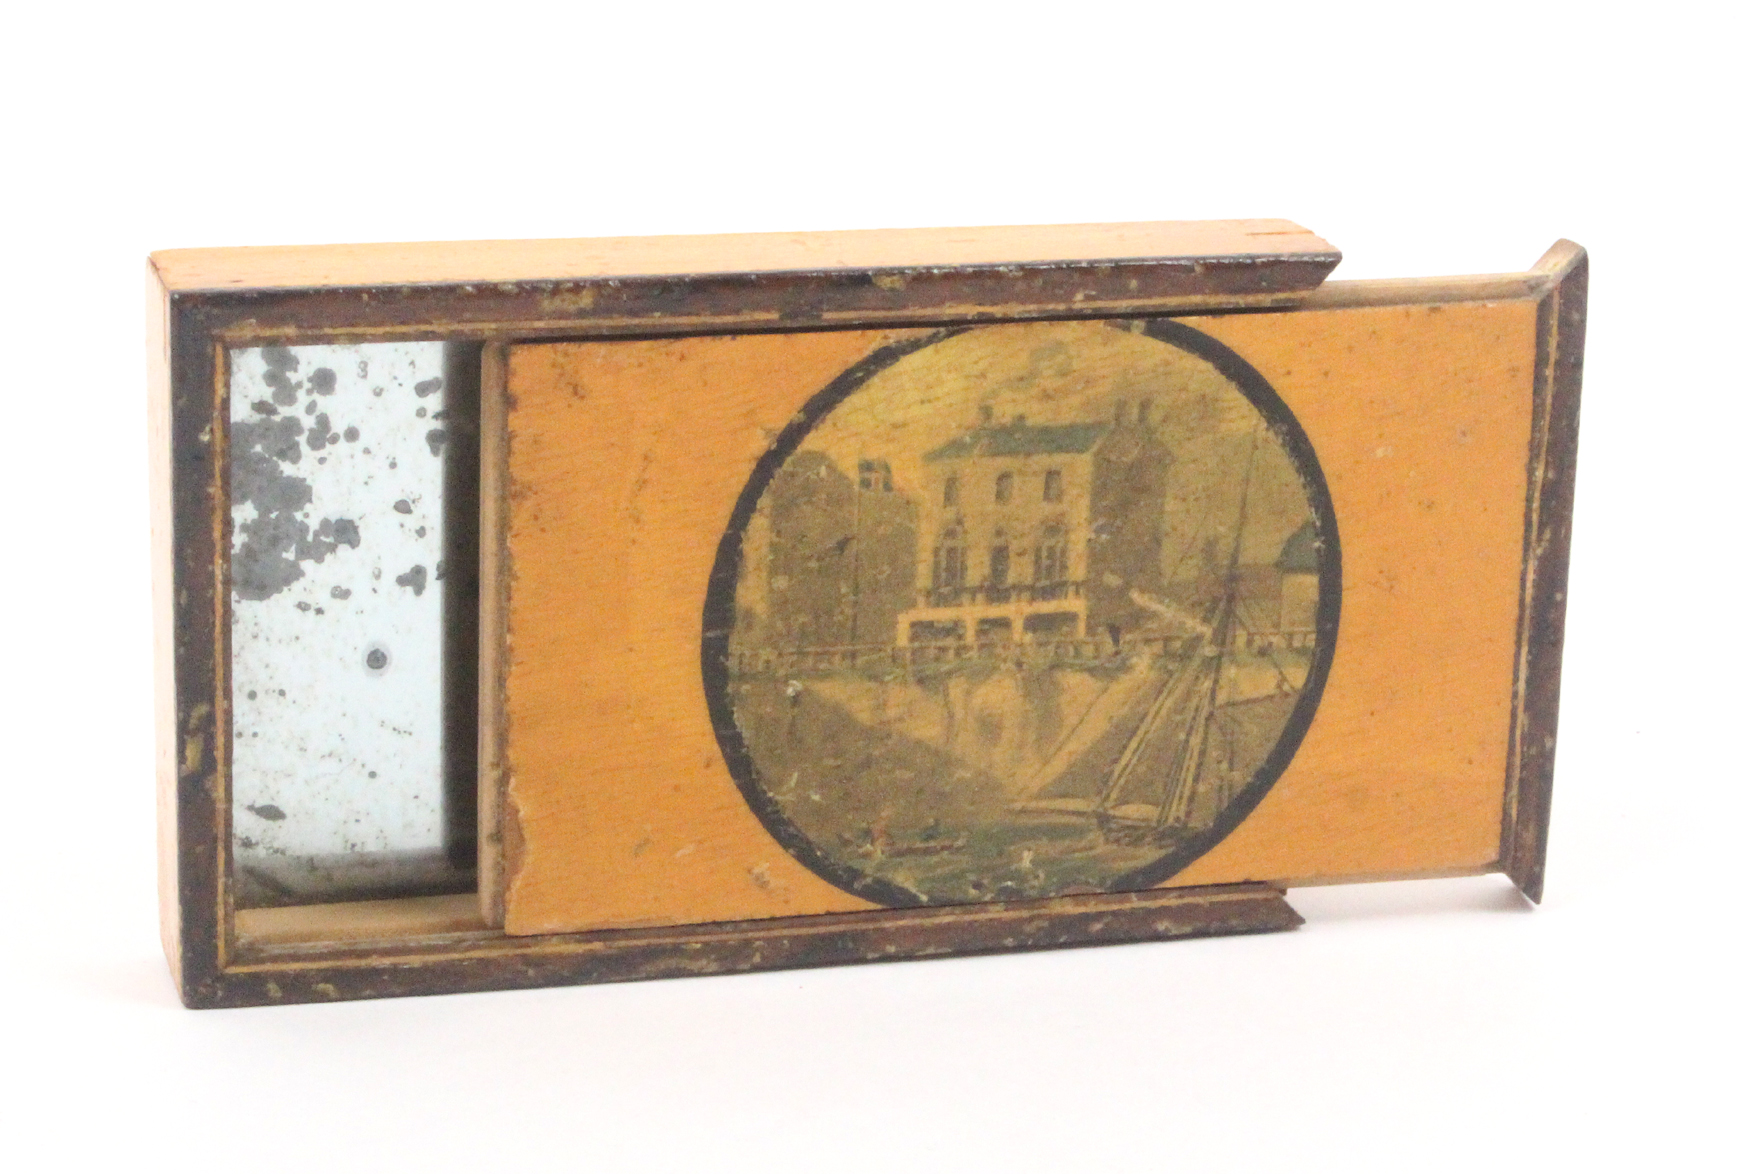 A rare and unusual print decorated early Tunbridge ware travelling mirror by Wise the rectangular